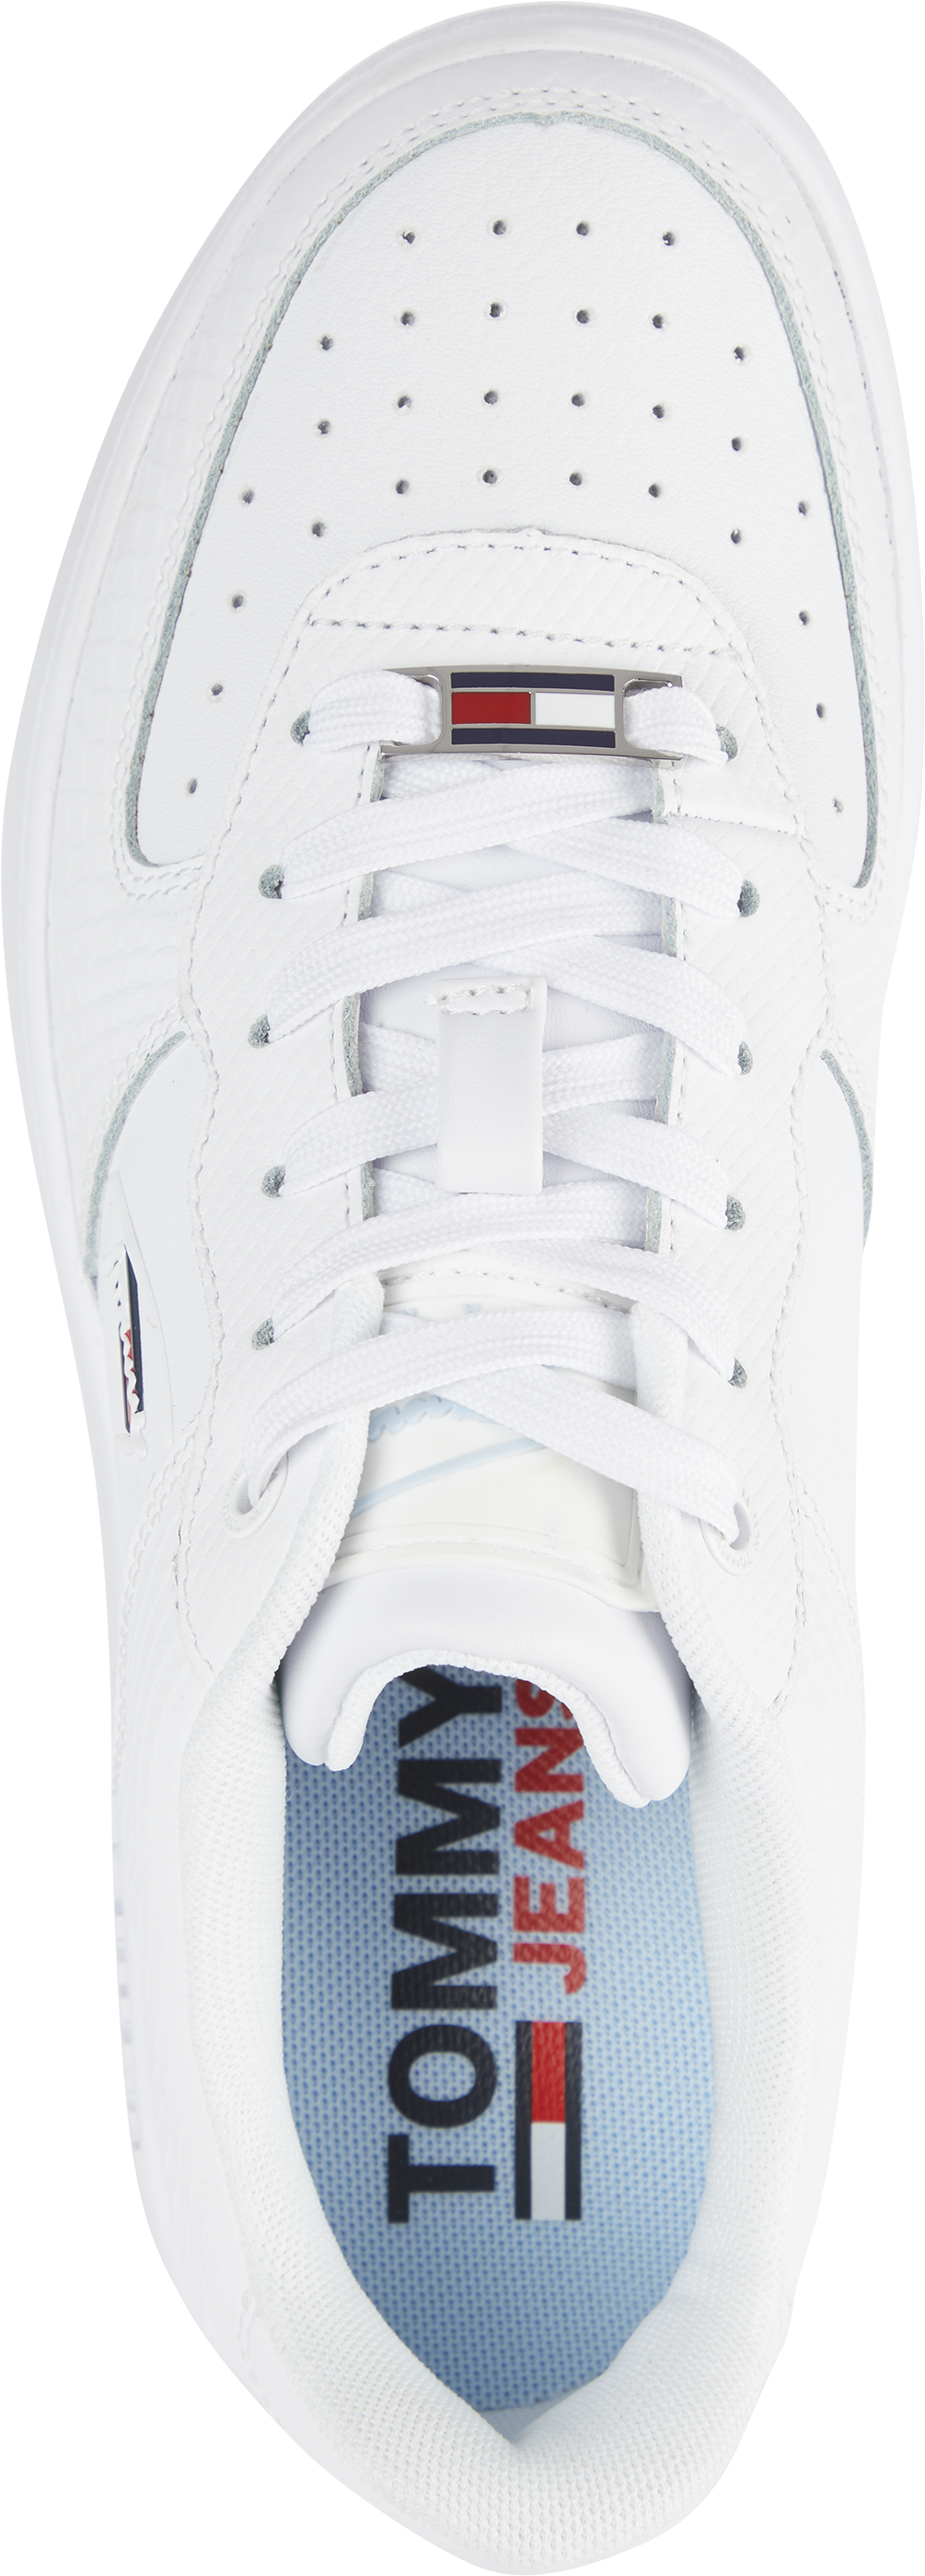 Tommy Hilfiger Textured Leather sneakers, white, 38